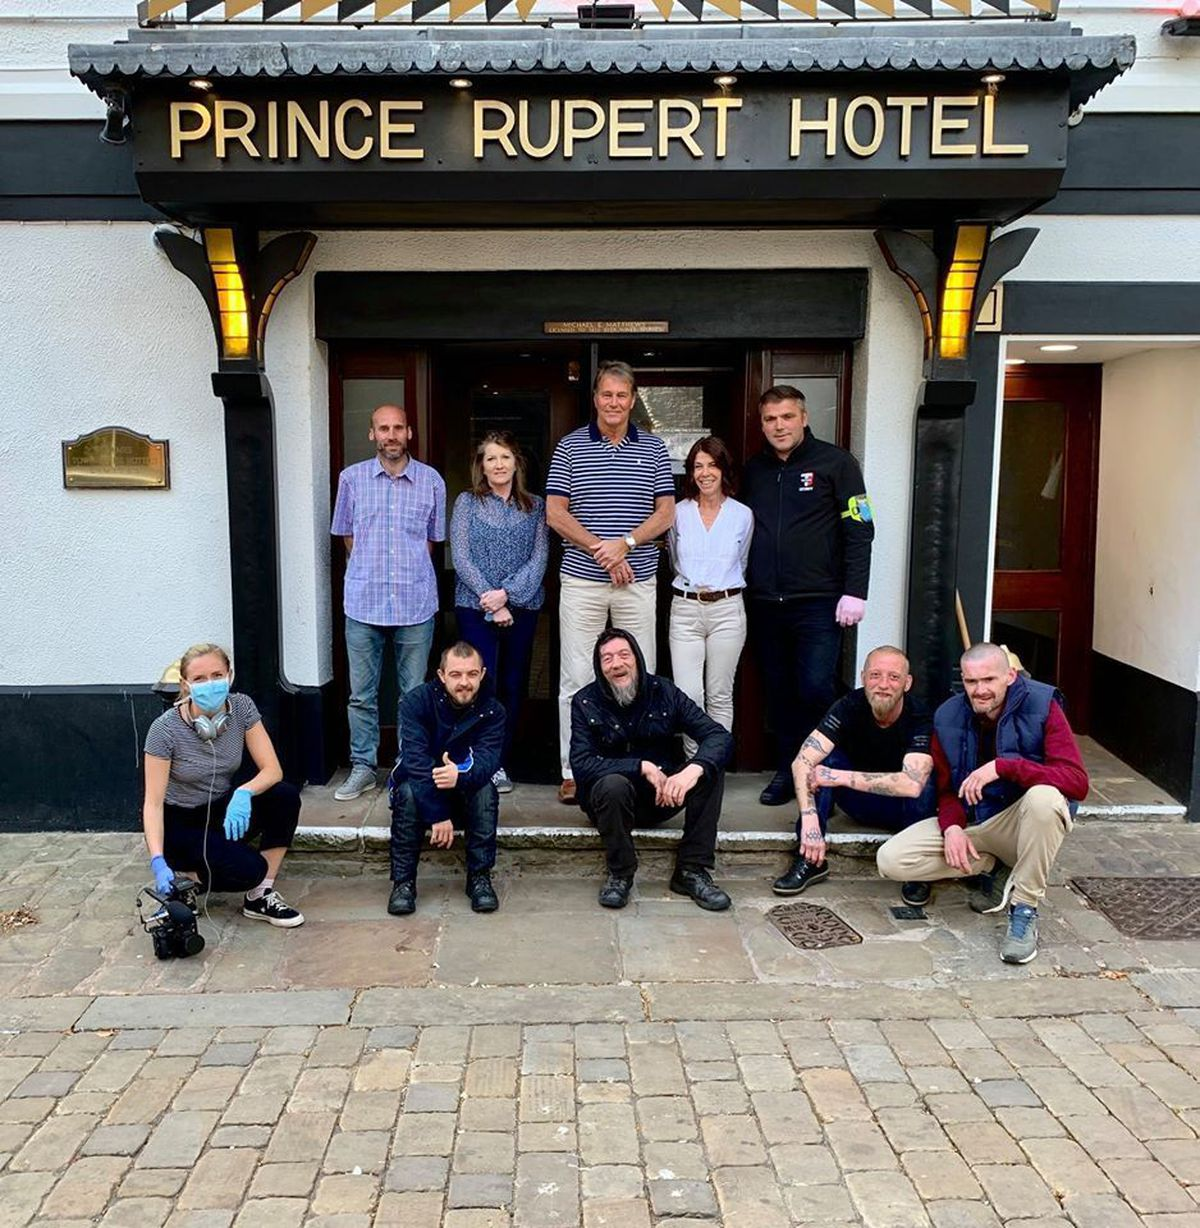 The Prince Rupert Hotel in Butcher Row has been providing shelter for the homeless